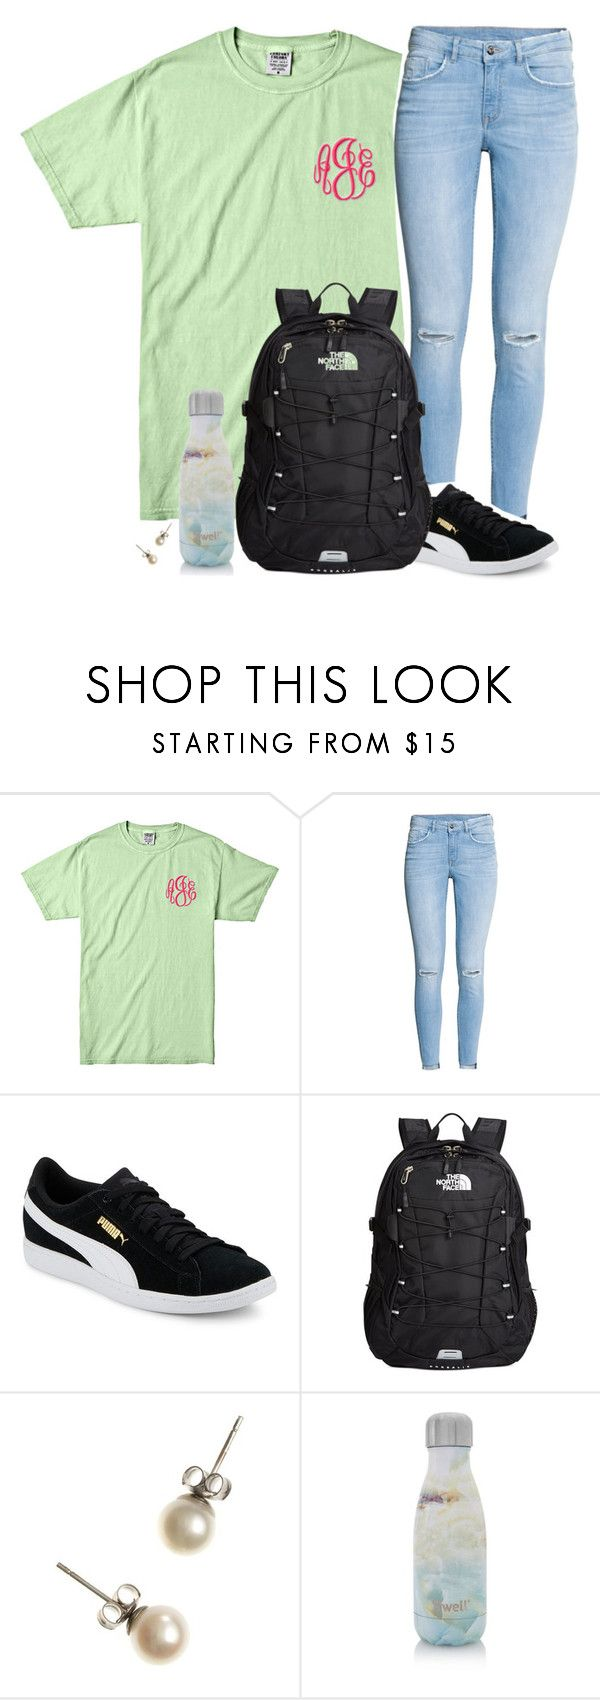 """Medical Camp Day 1"" by xomadibbyyy ❤ liked on Polyvore featuring H&M, Puma, The North Face, J.Crew and S'well"